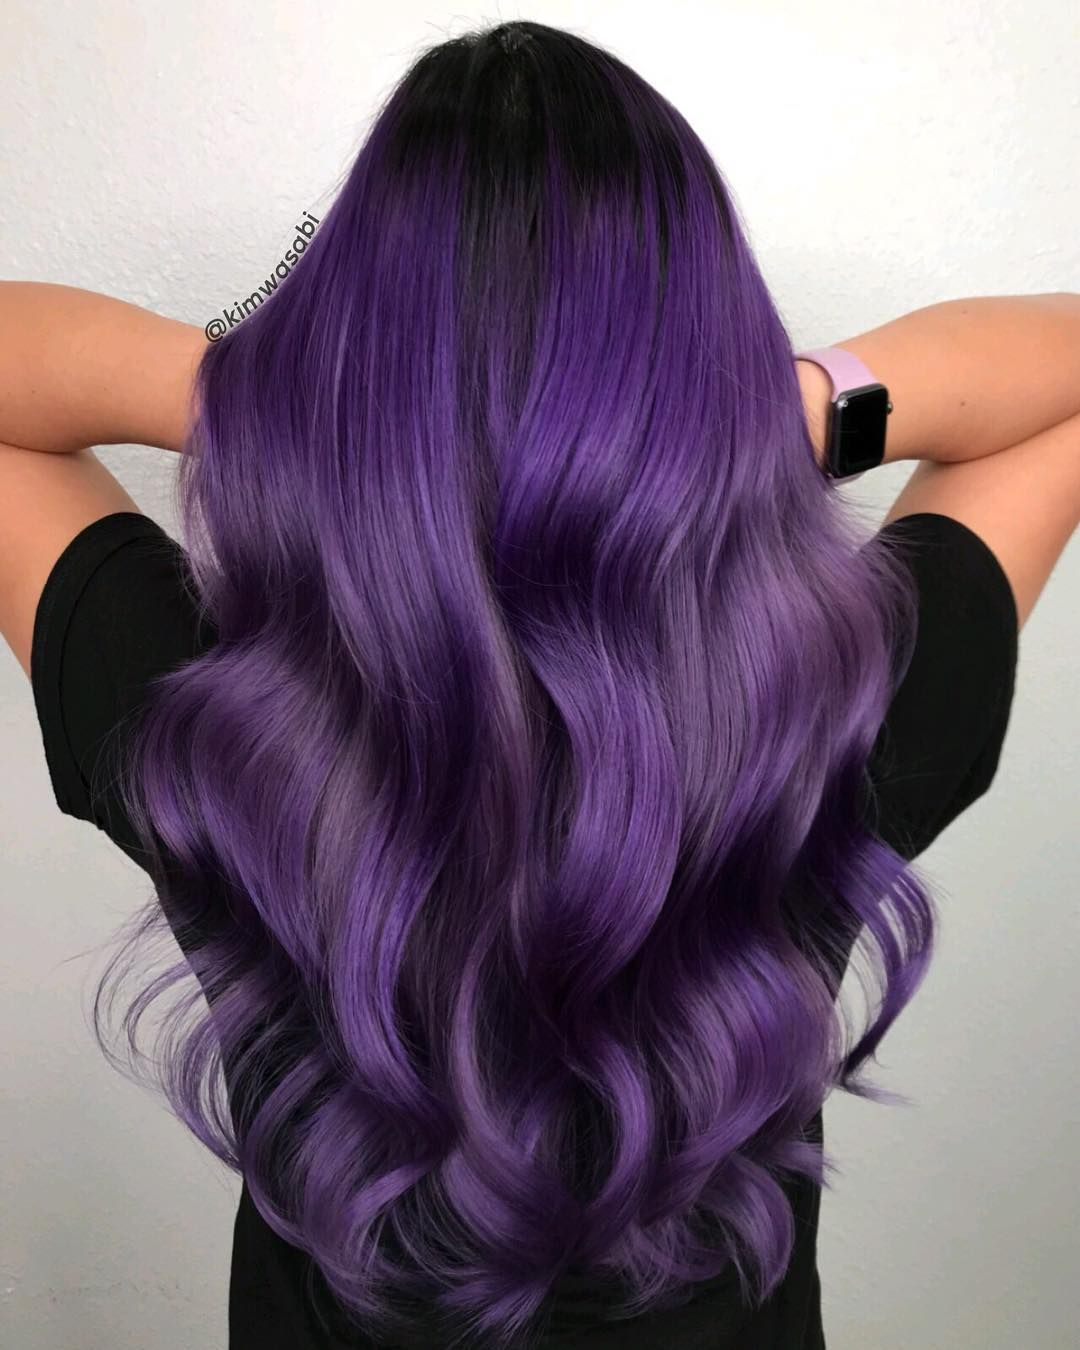 63 Purple Hair Color Ideas To Swoon Over Violet Purple Hair Dye Tips: Kimemily Pham On Instagram: My Favorite Color Of All Time